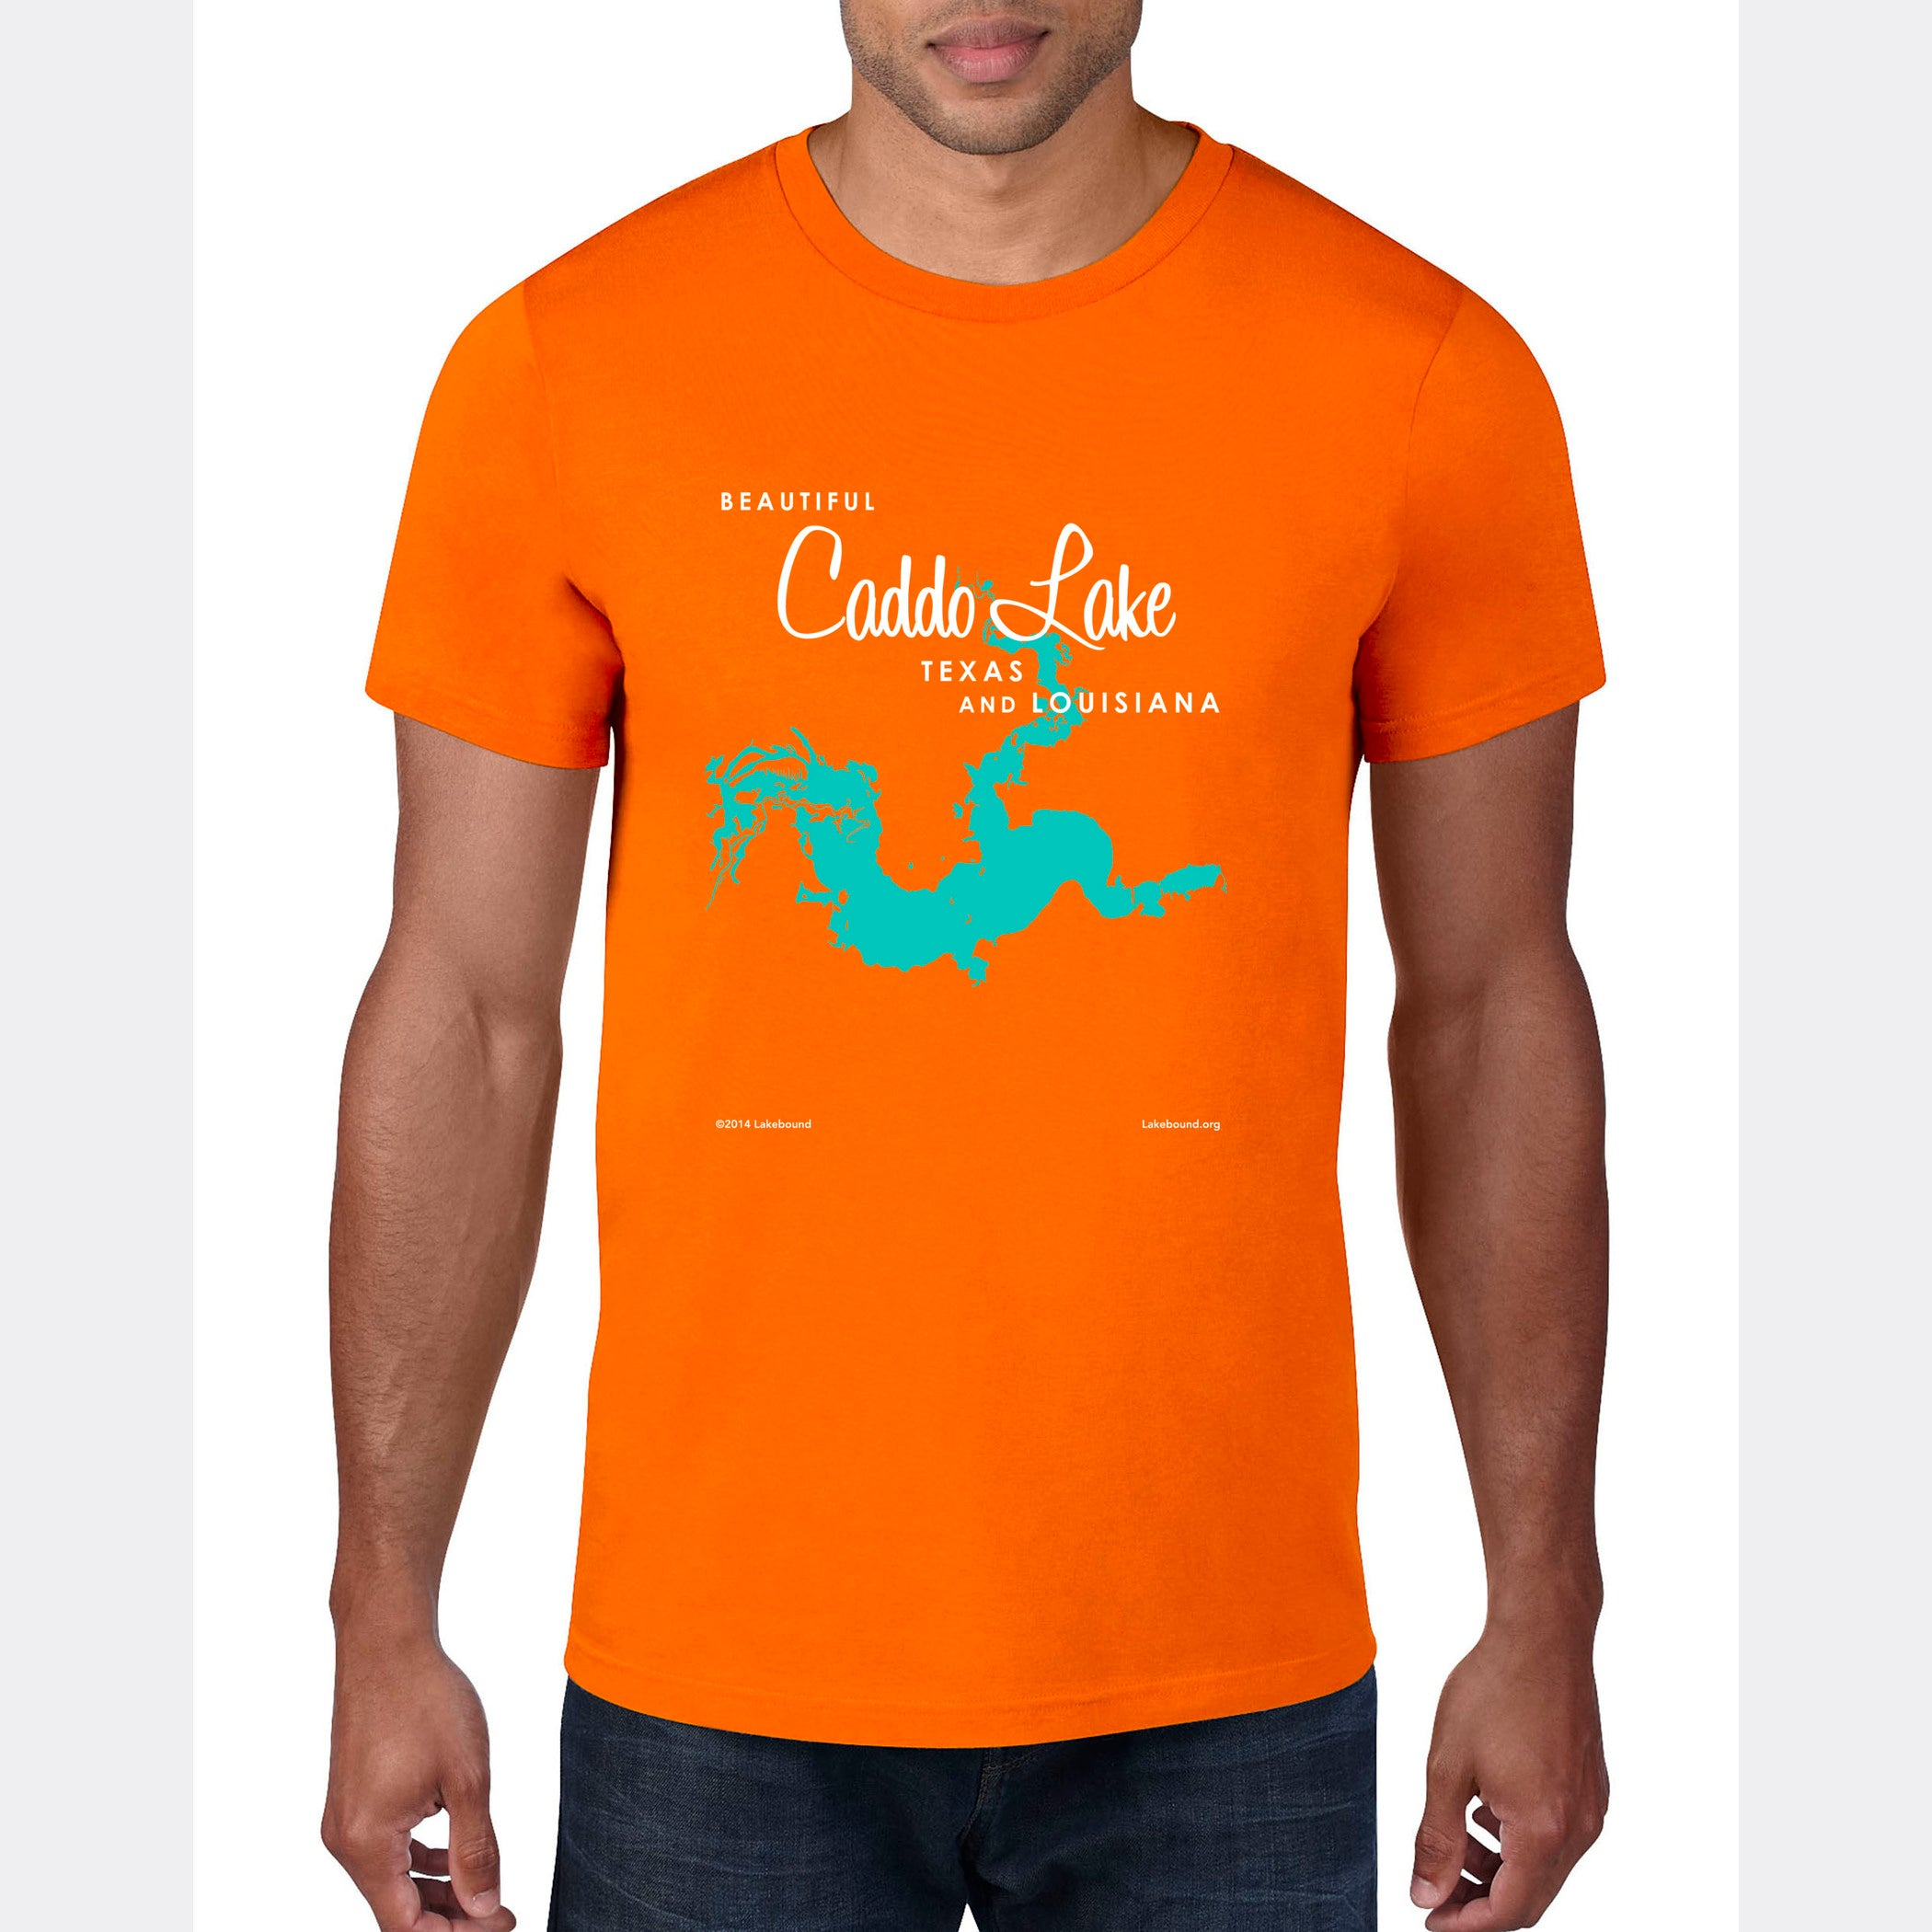 Caddo Lake TX Louisiana, T-Shirt